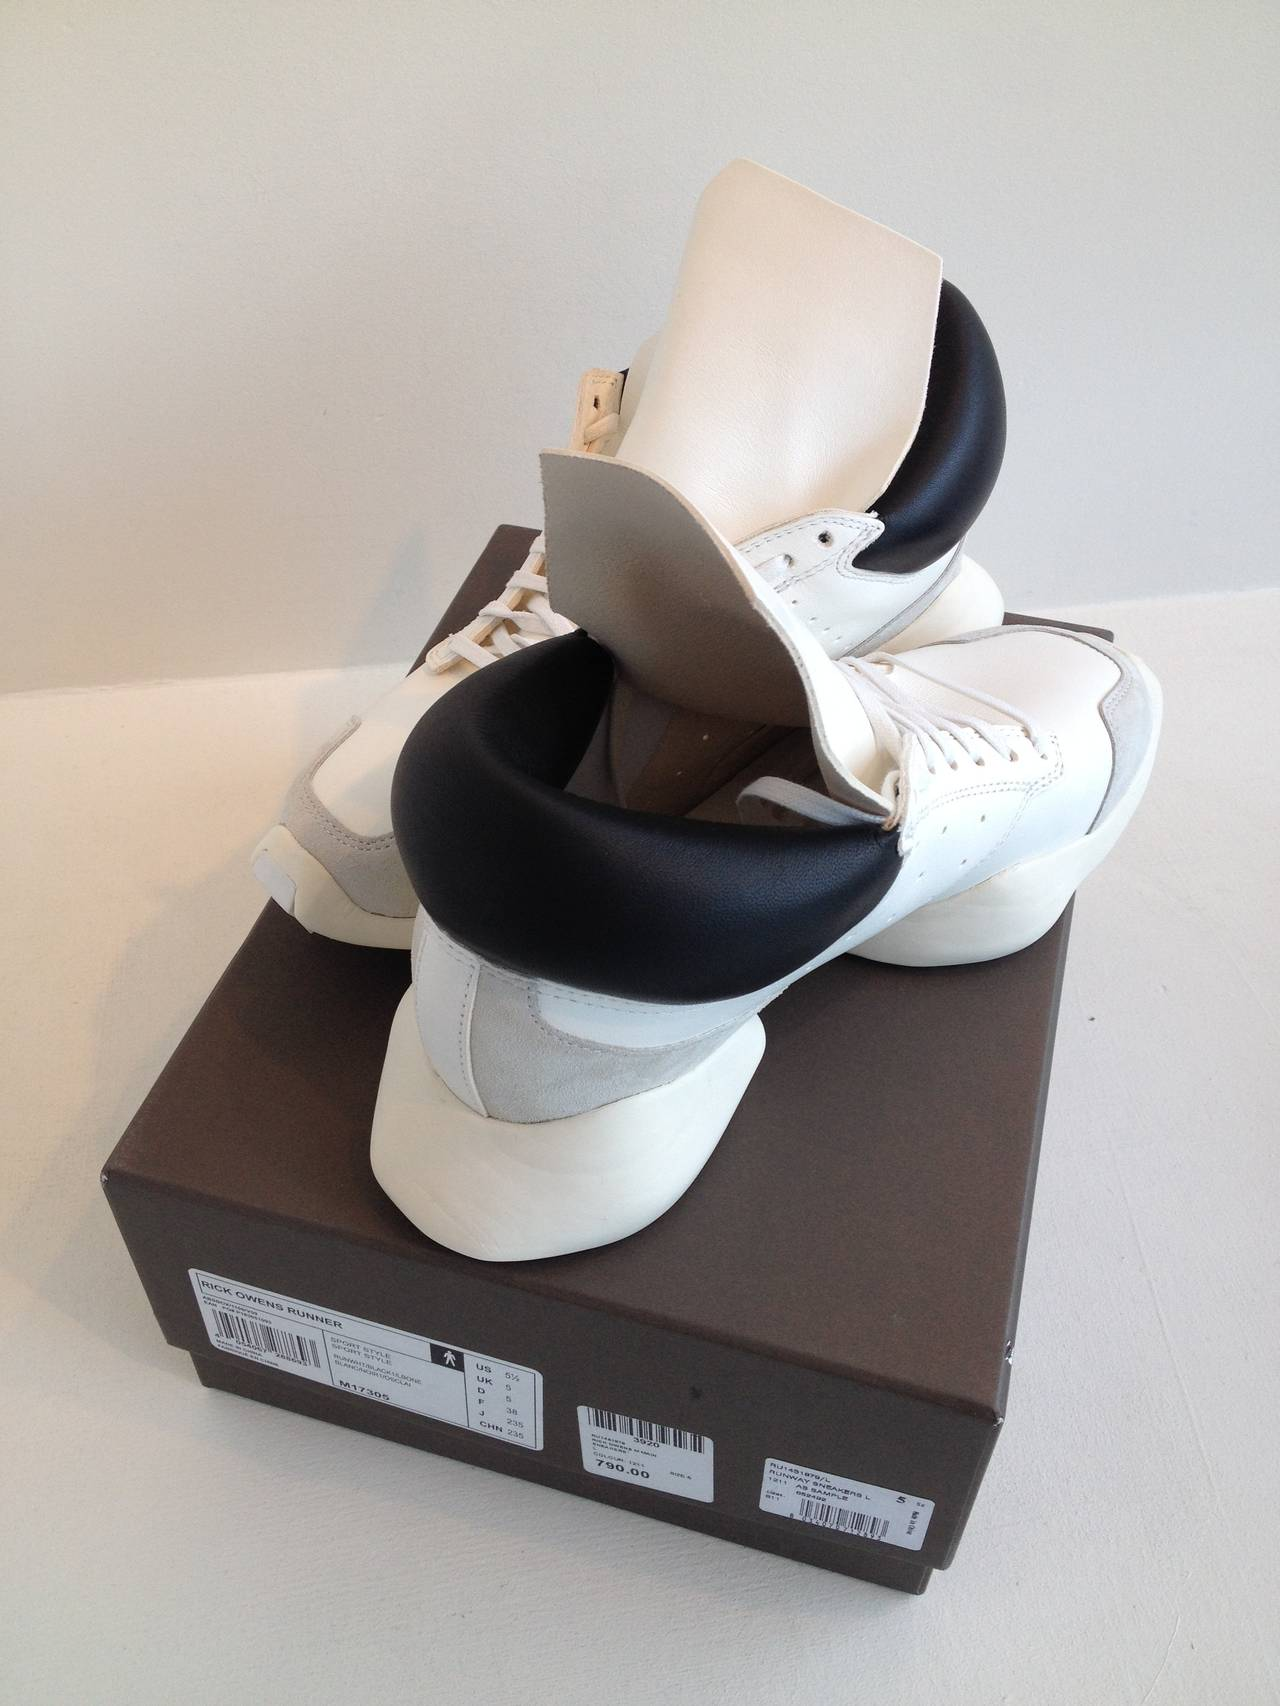 Rick Owens for Adidas White Puffy Sneakers 8